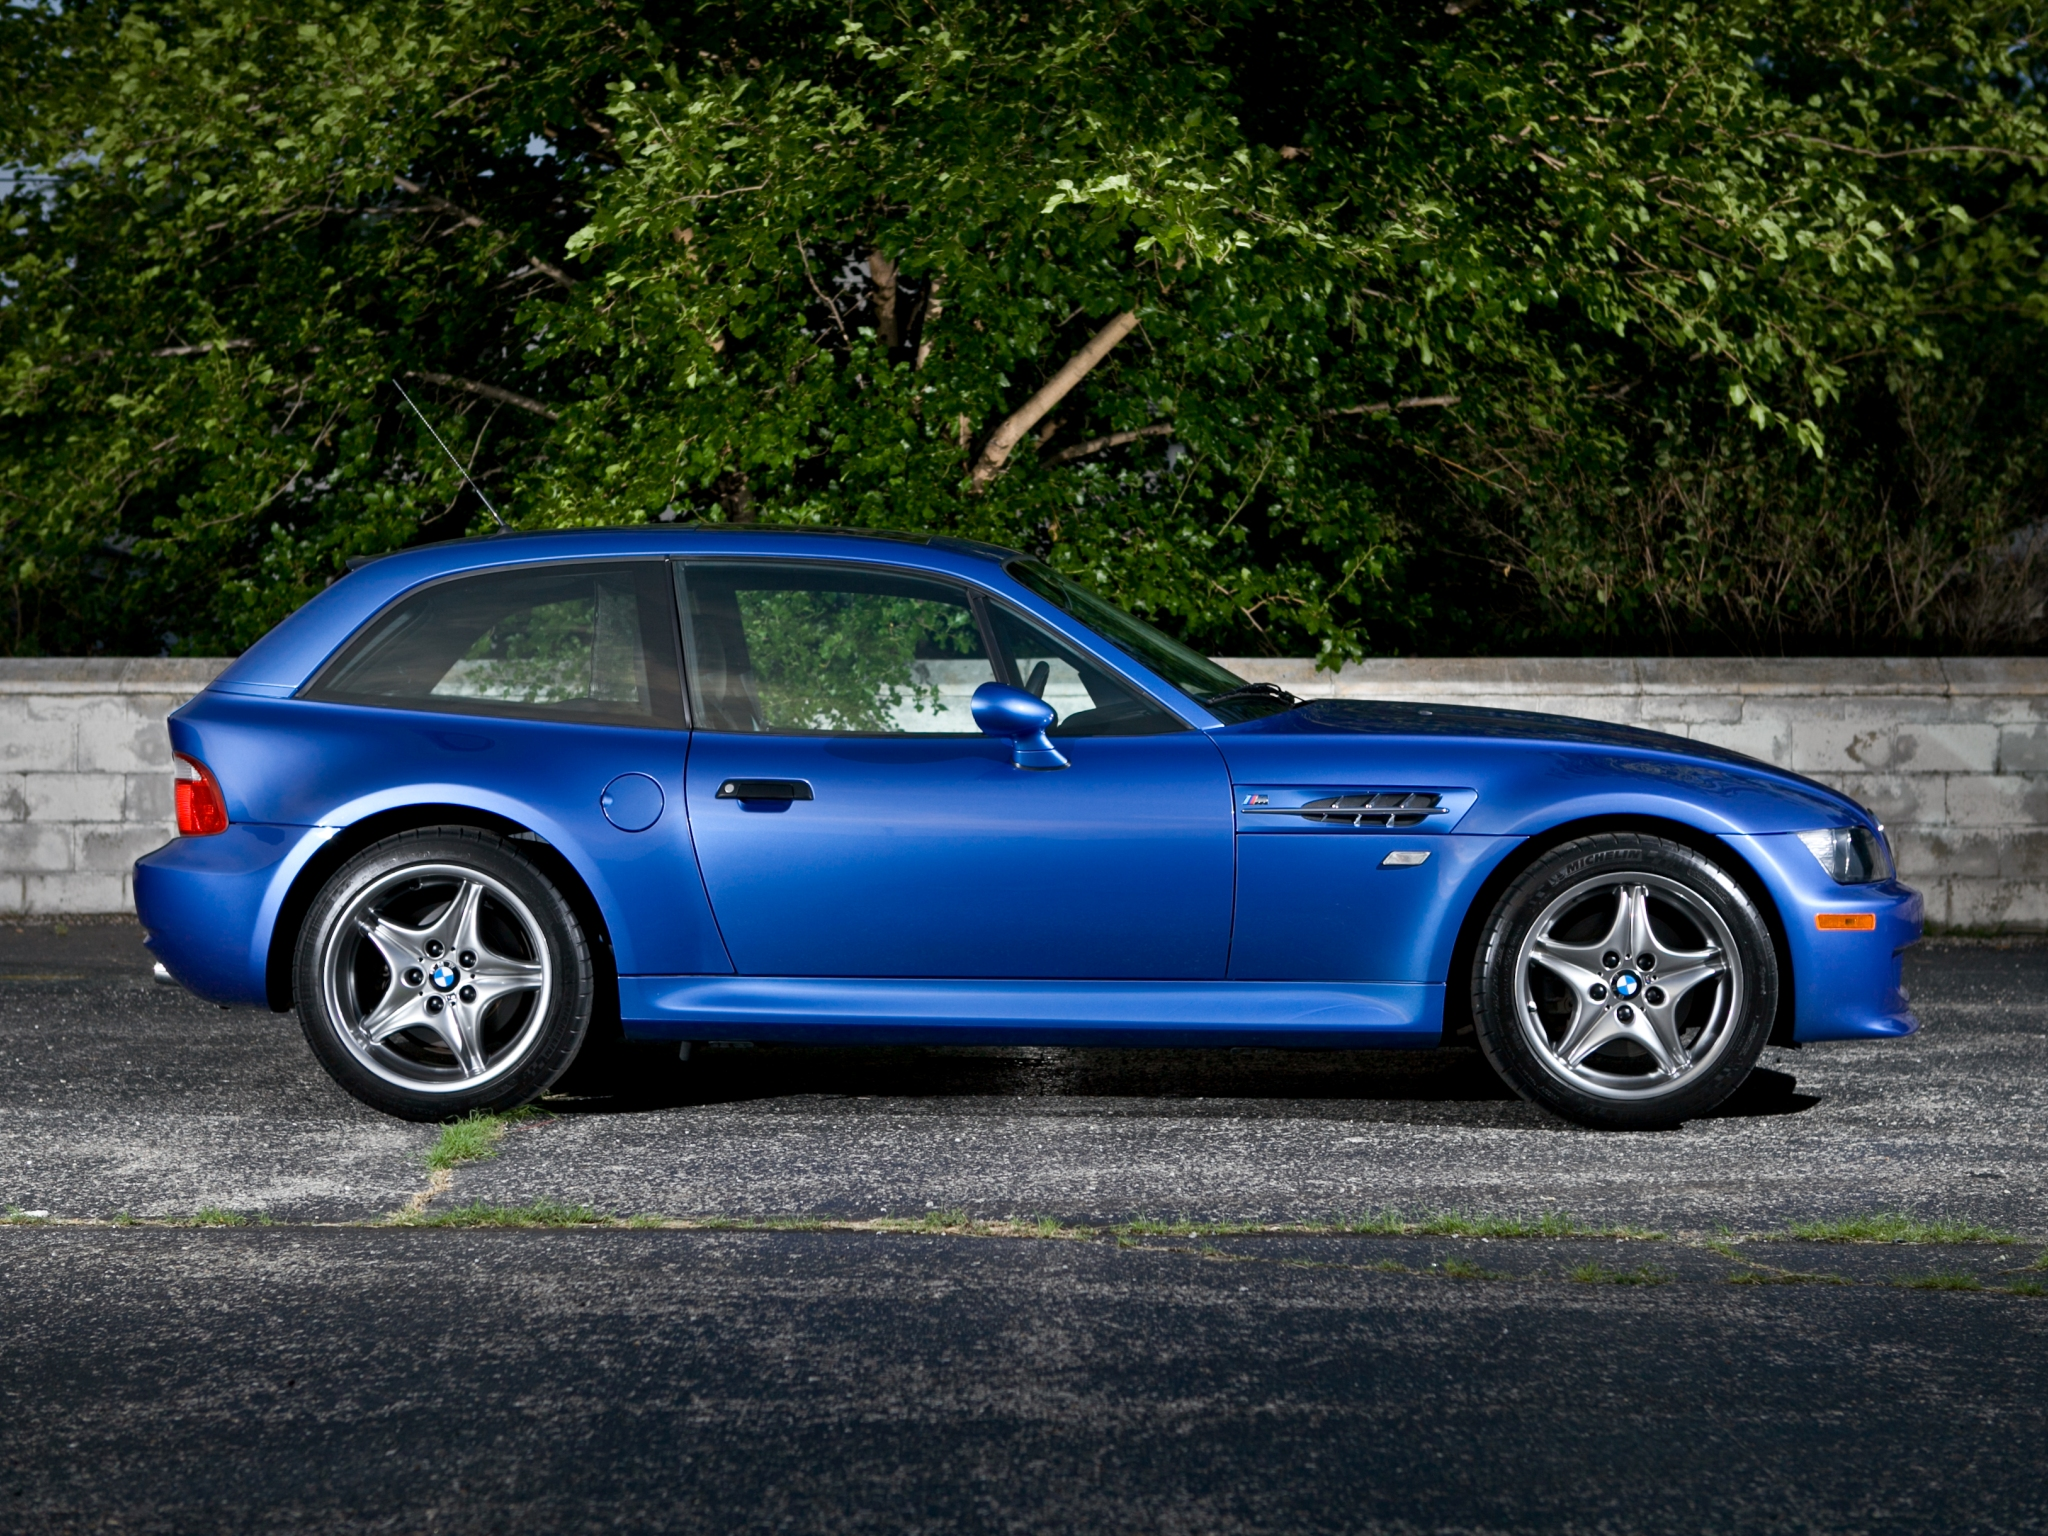 Bmw Z3 Photos Photogallery With 27 Pics Carsbase Com